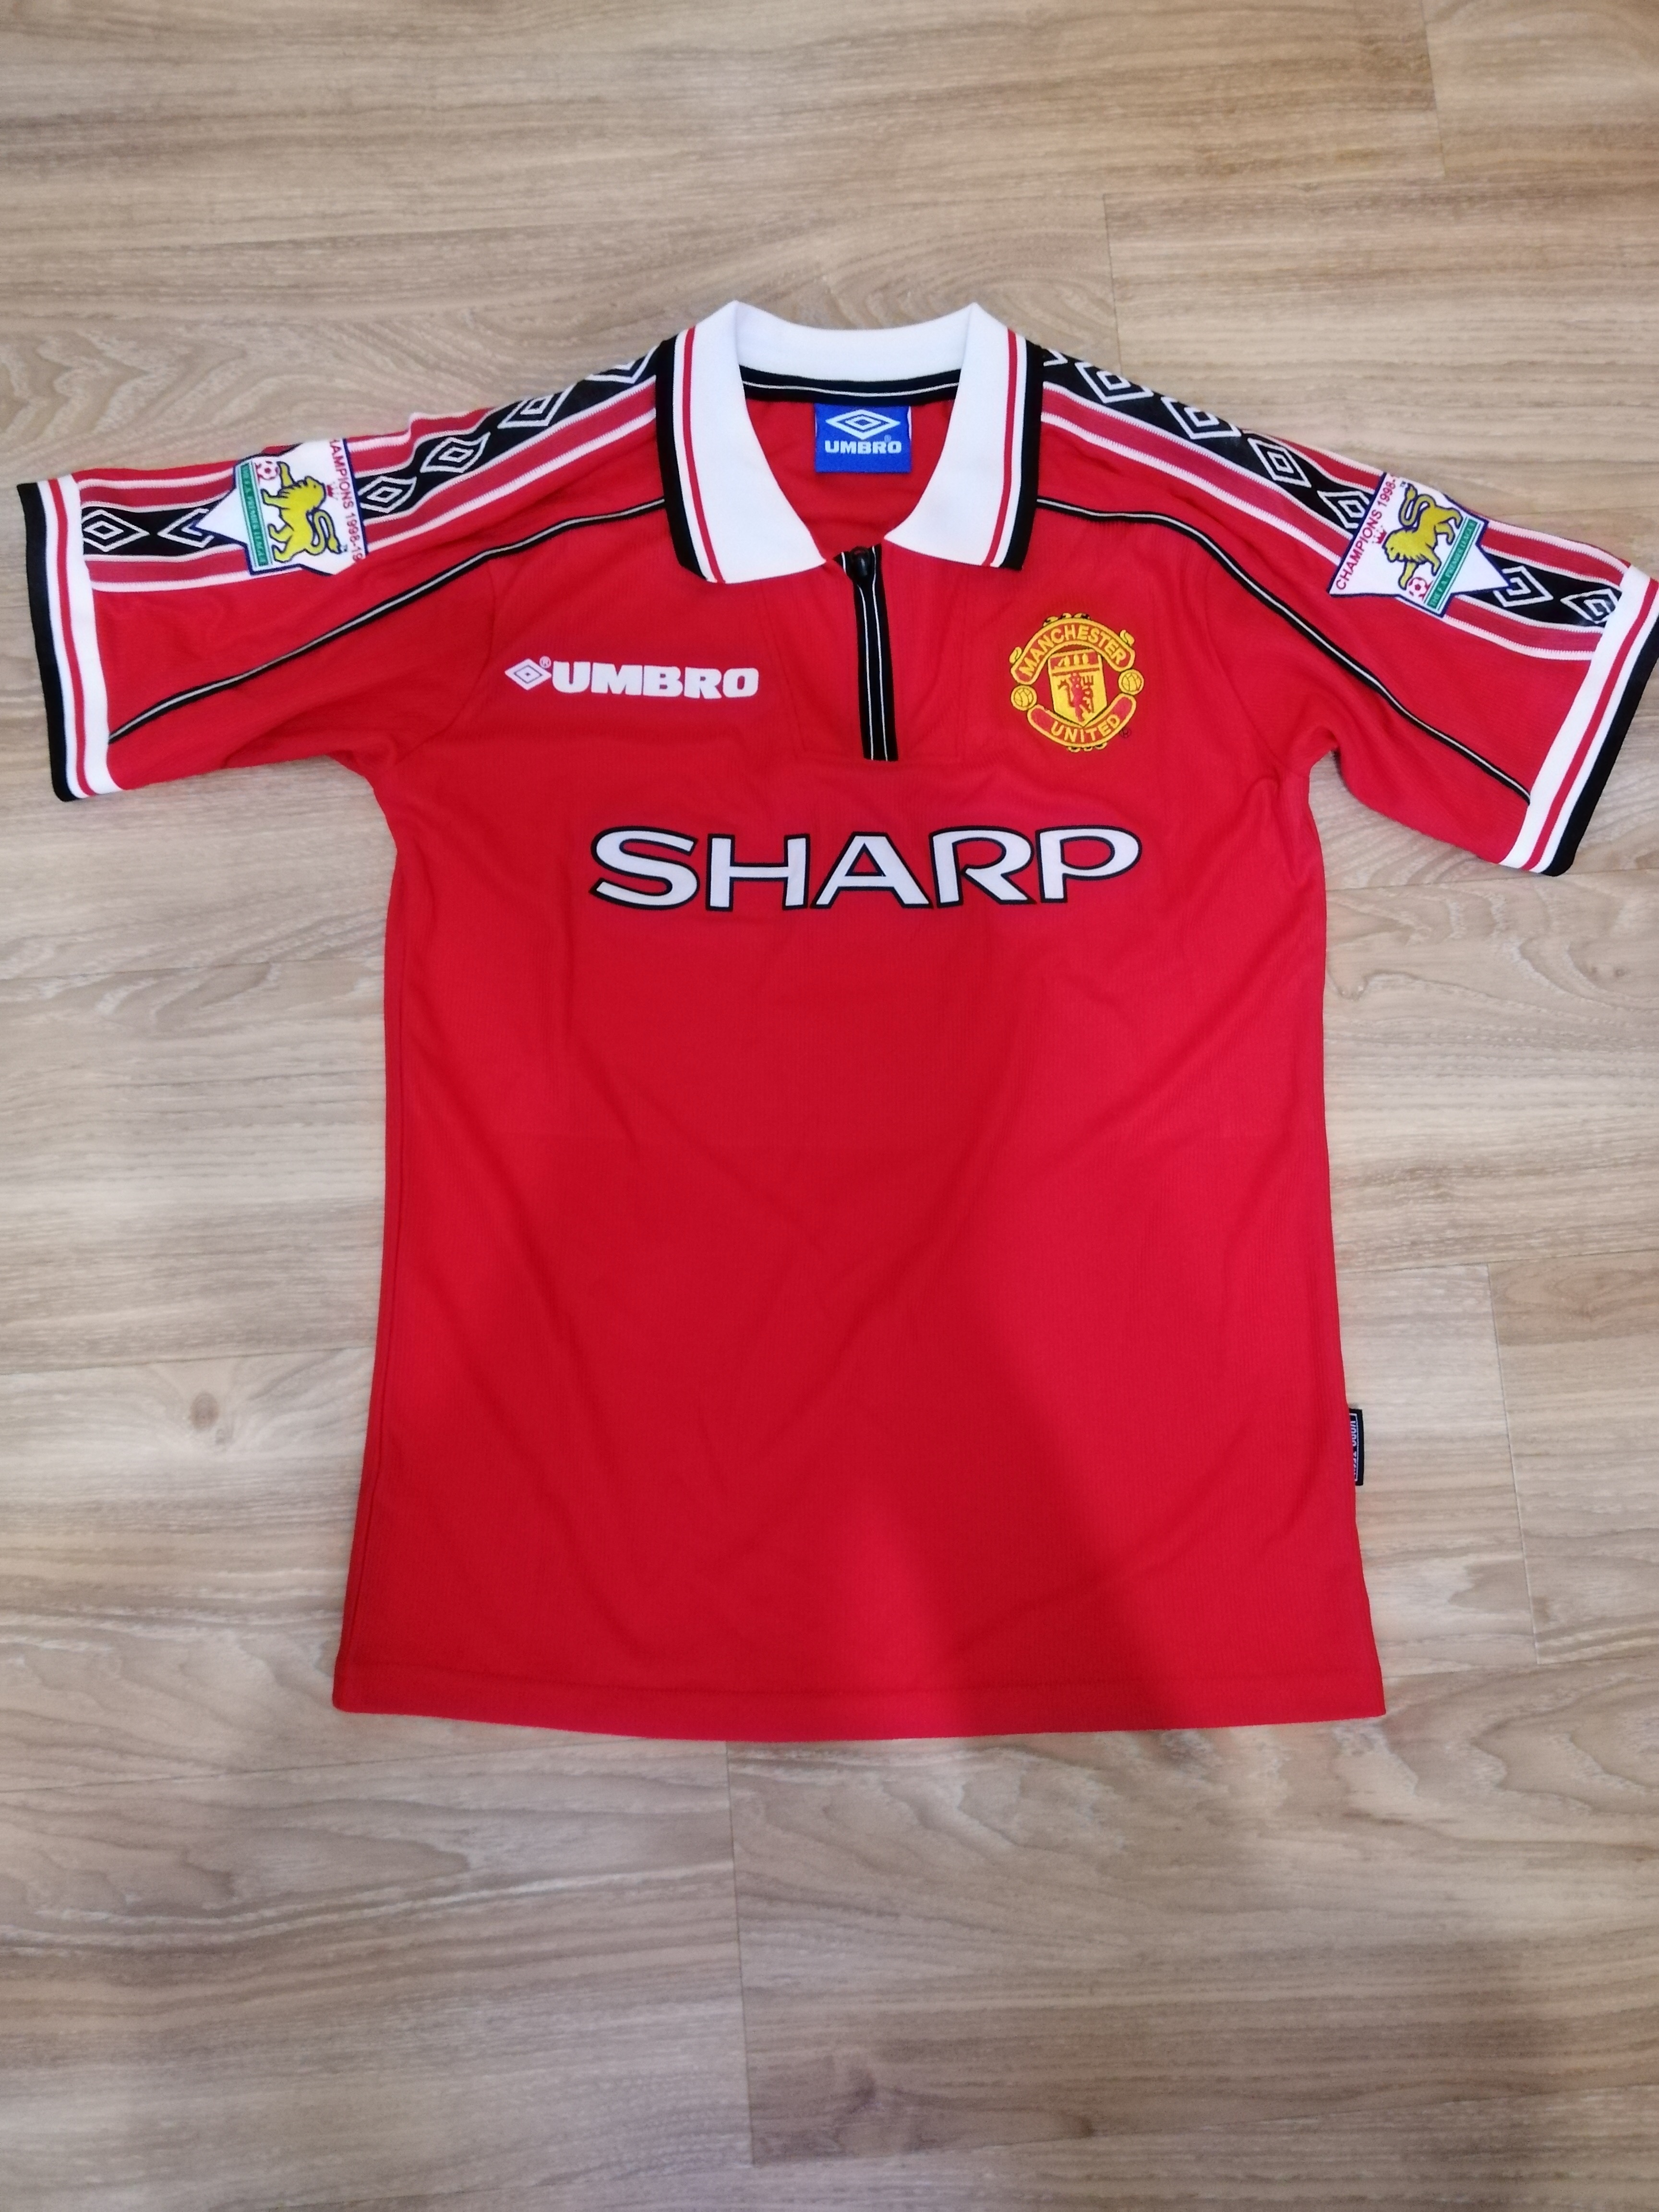 de1d7026b Product details of Manchester United Soccer Jersey Home Football Jersey  1998 1999